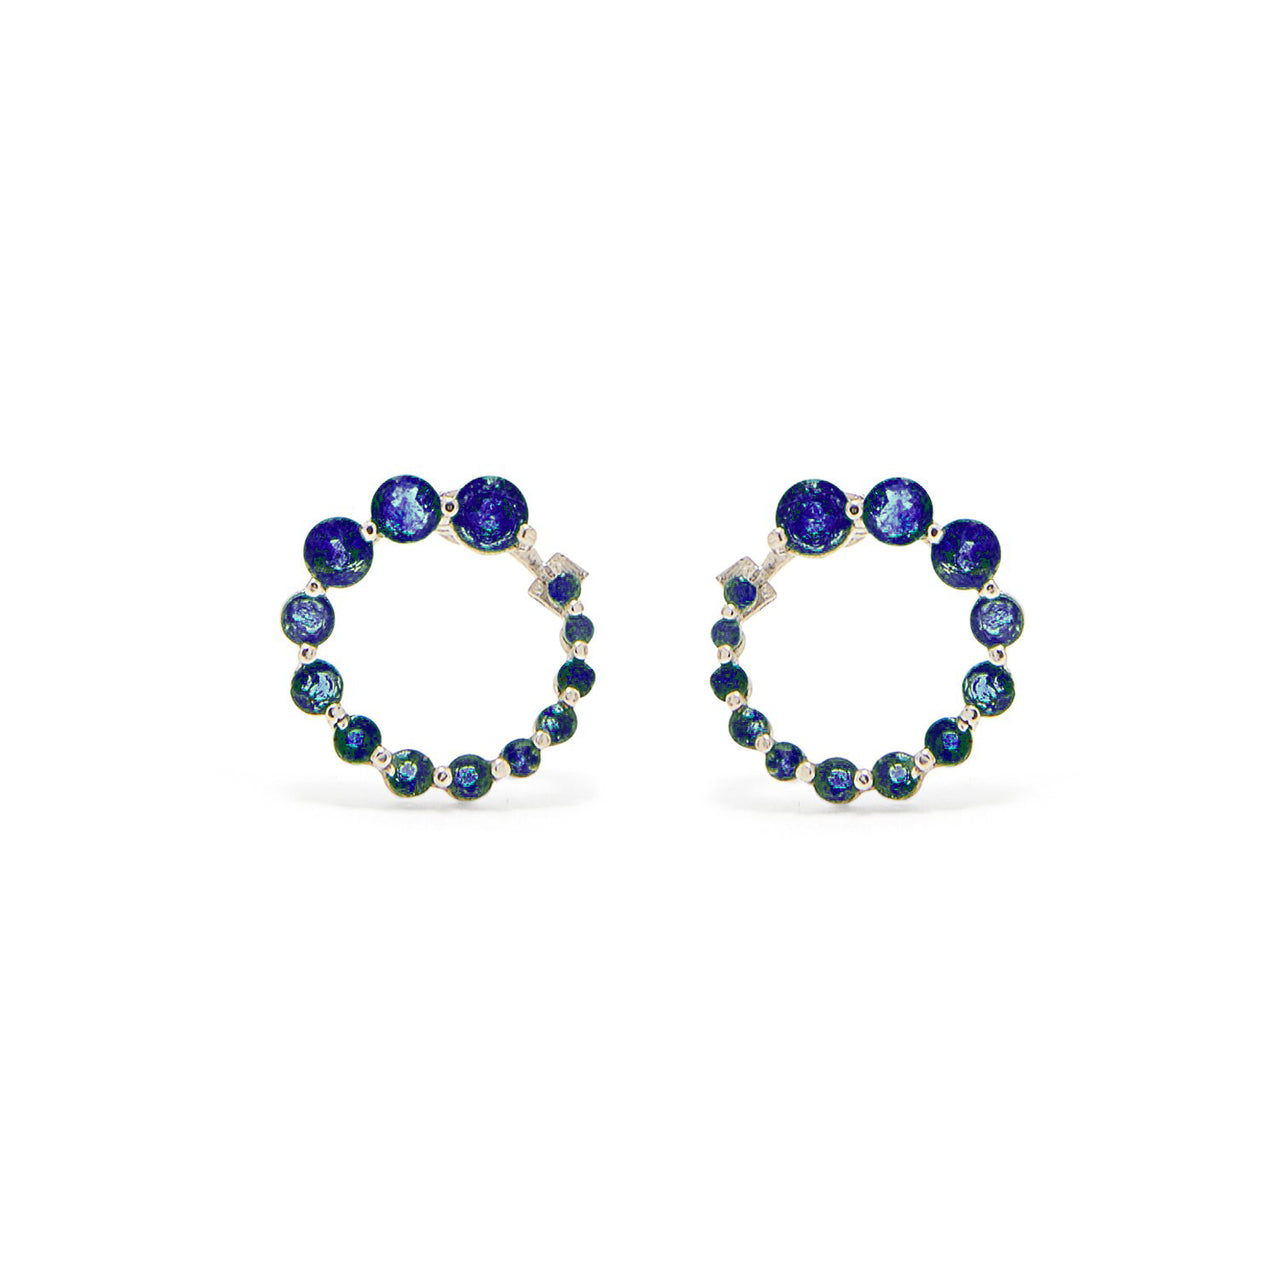 Sapphire Swirl White Gold Earrings-Earrings-Jaipur Atelier